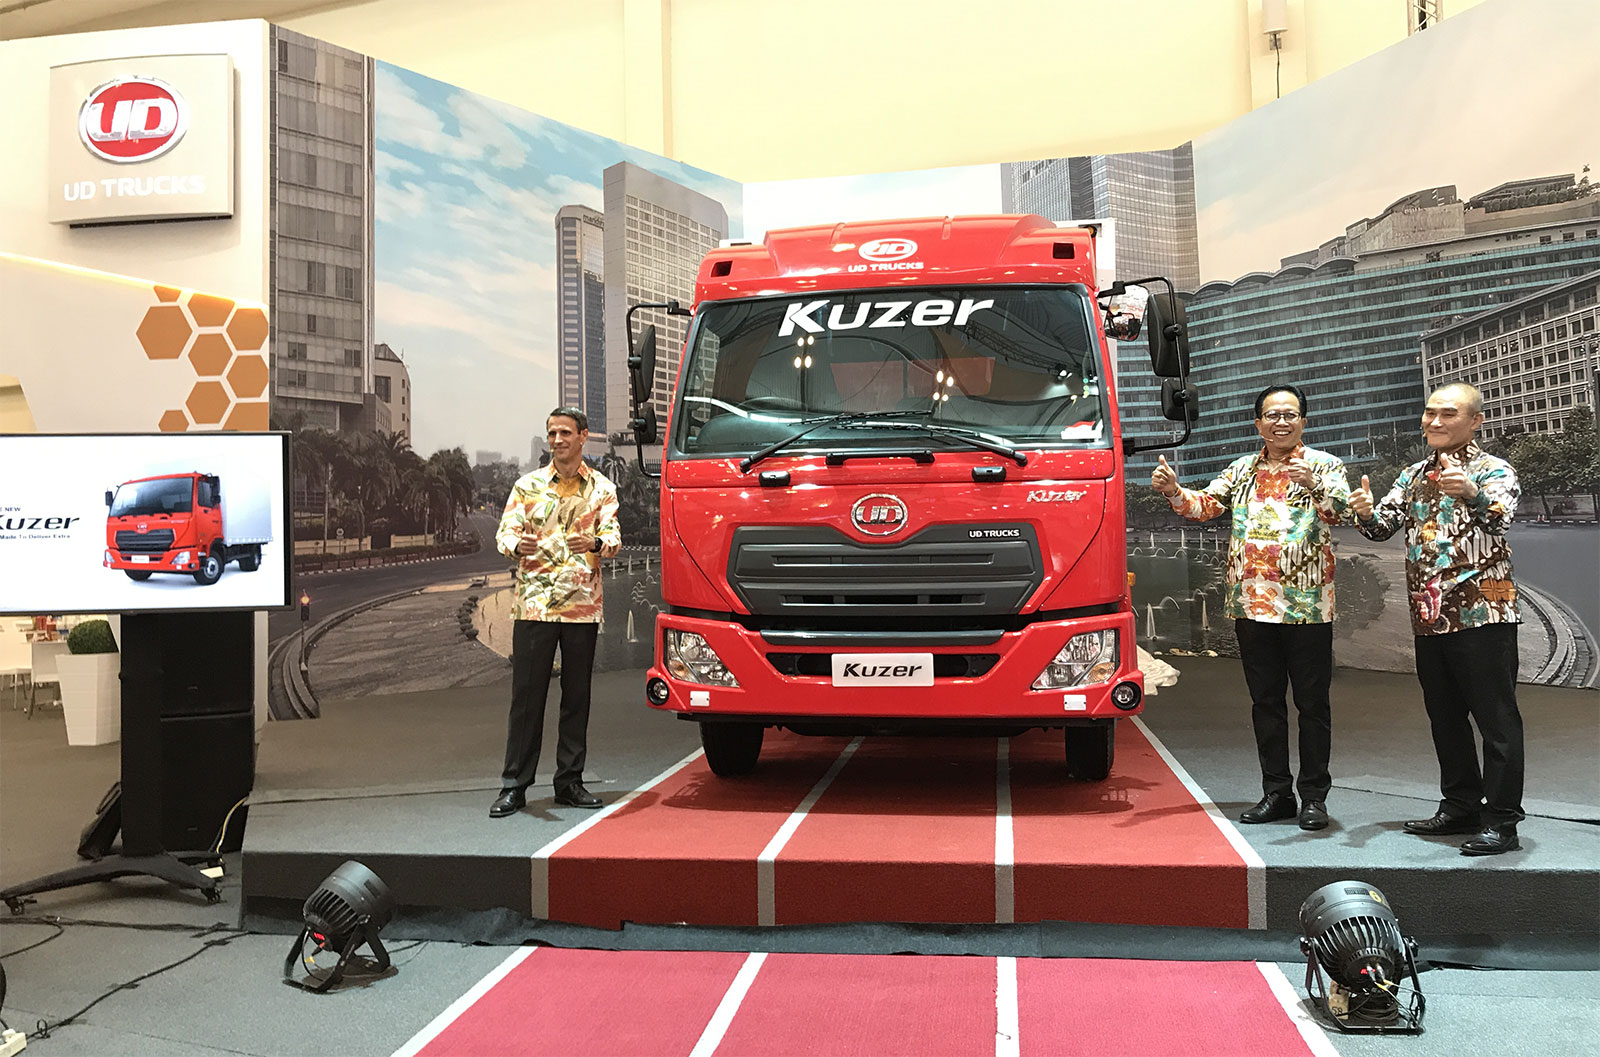 Kuzer, soon rolling the street this year